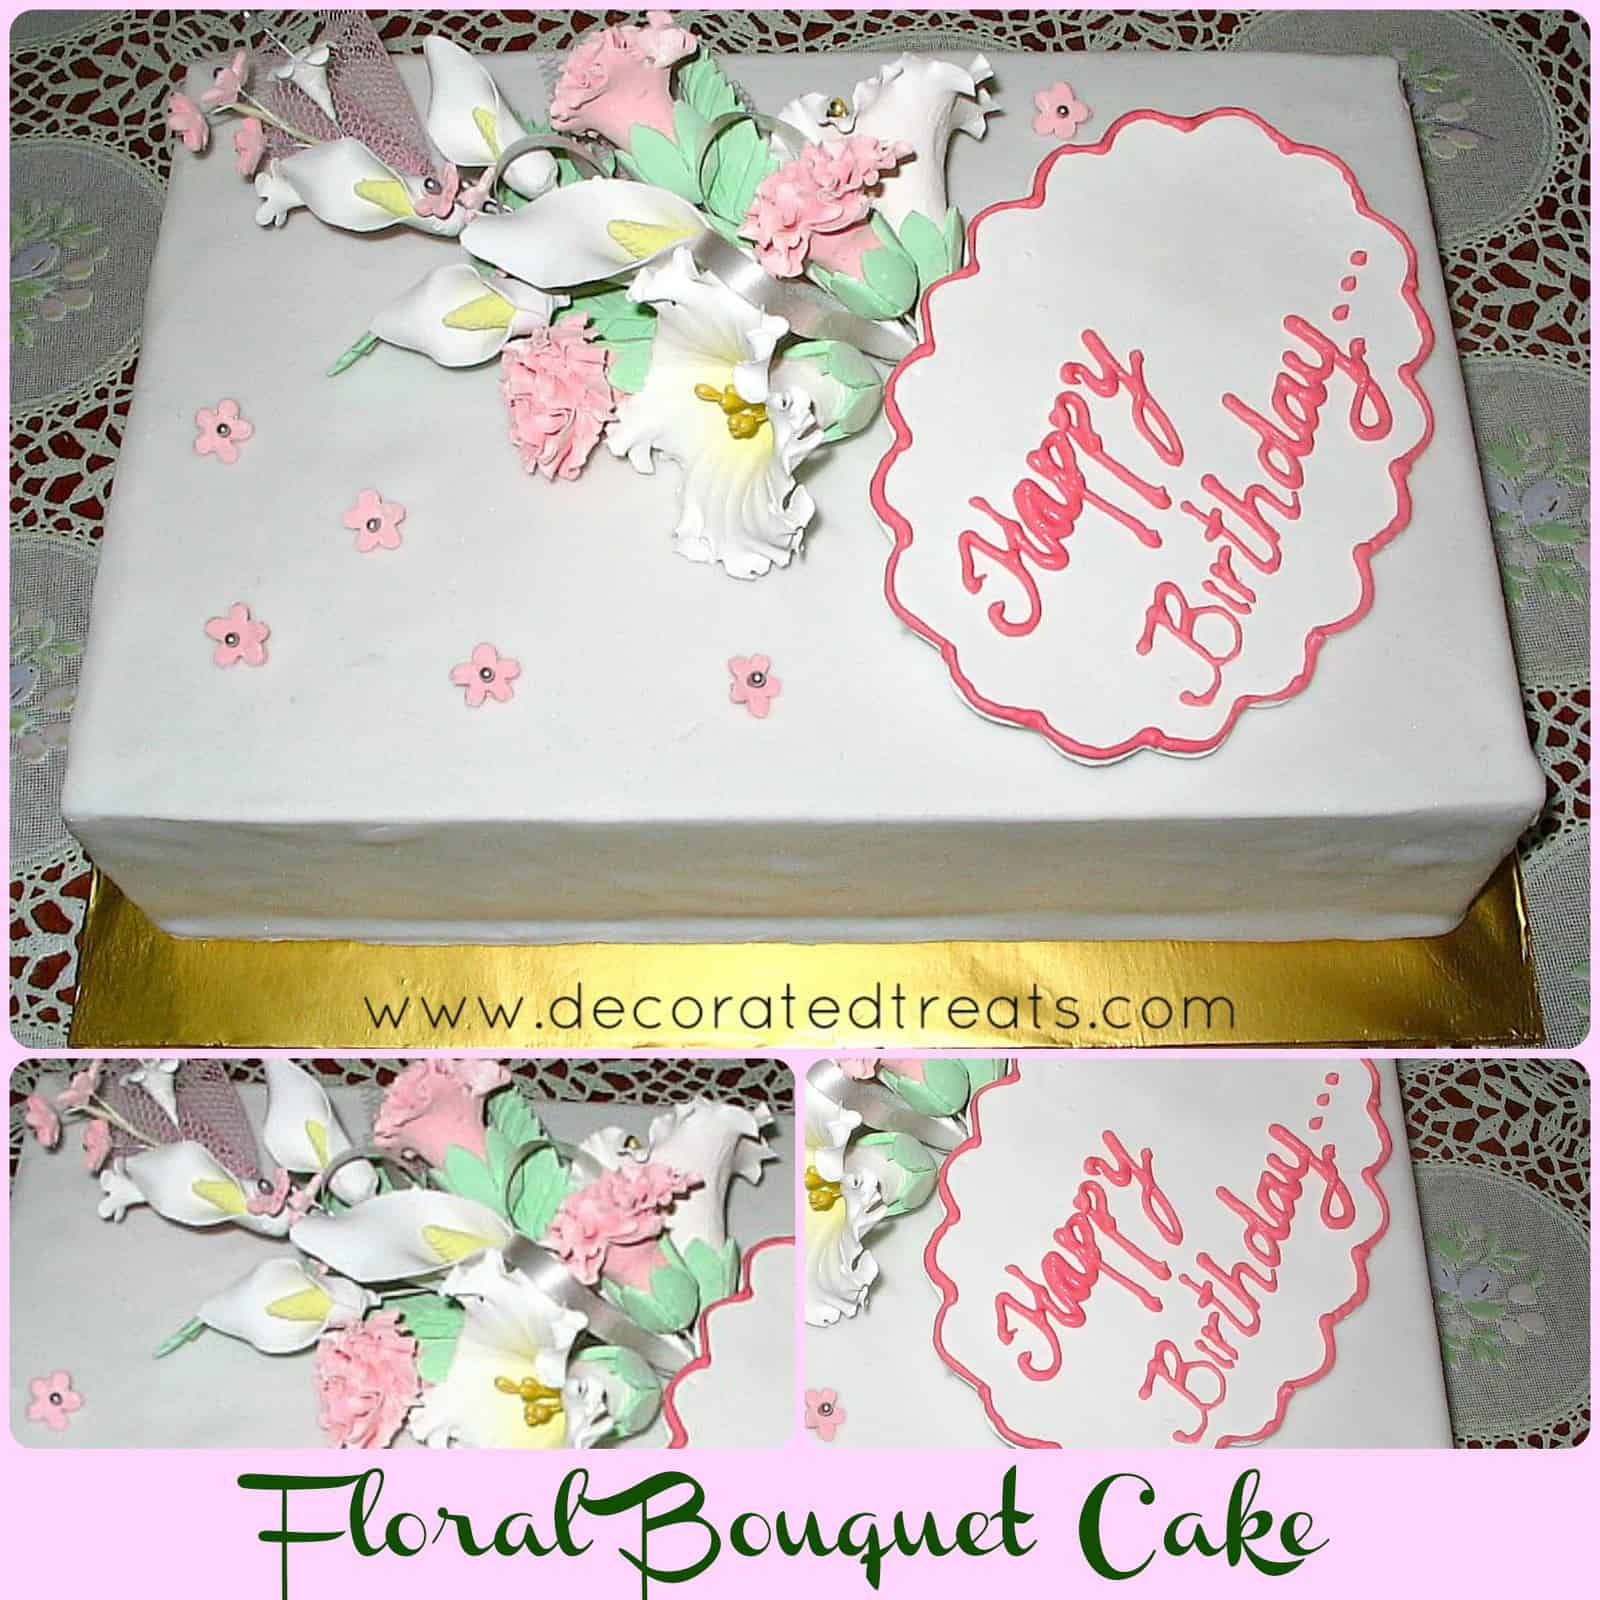 Poster for floral bouquet cake